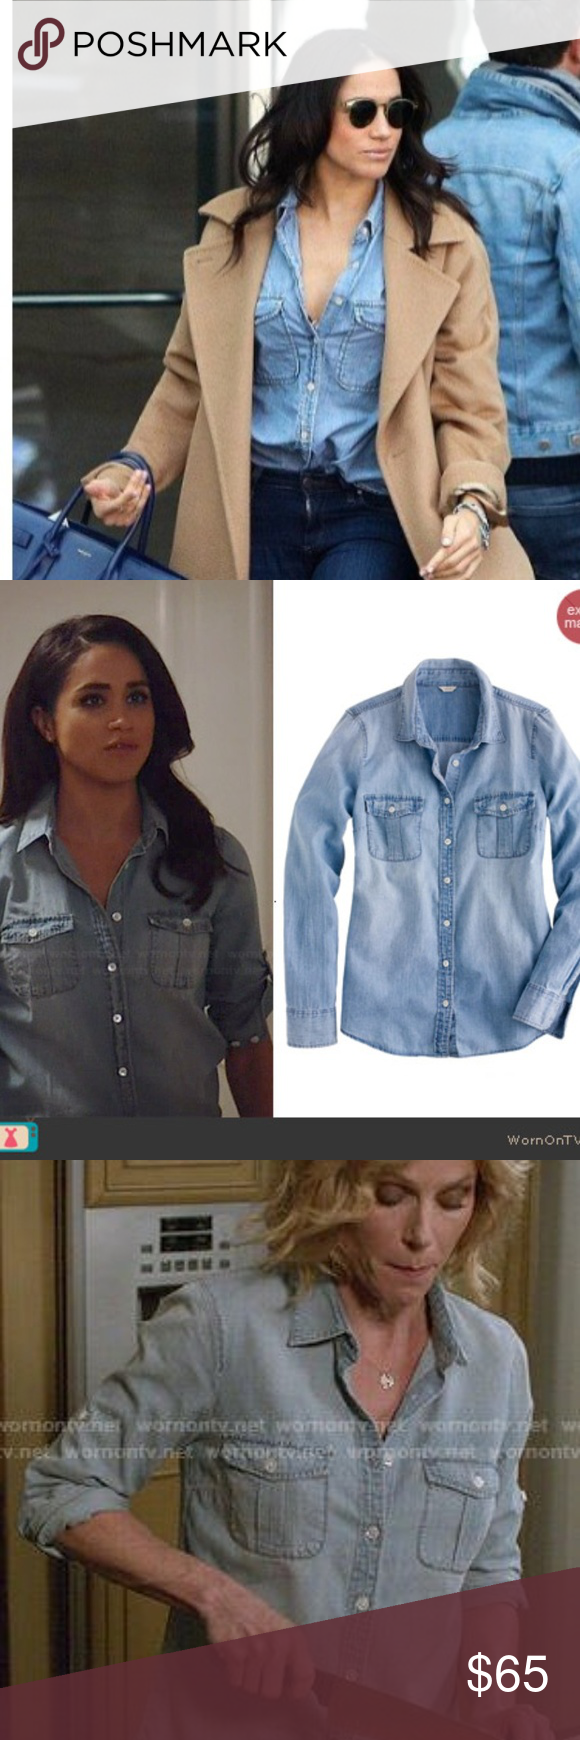 J crew blue lace dress march 2019 HPJCREW chambray shirt  as on Meghan Markle in   My Posh